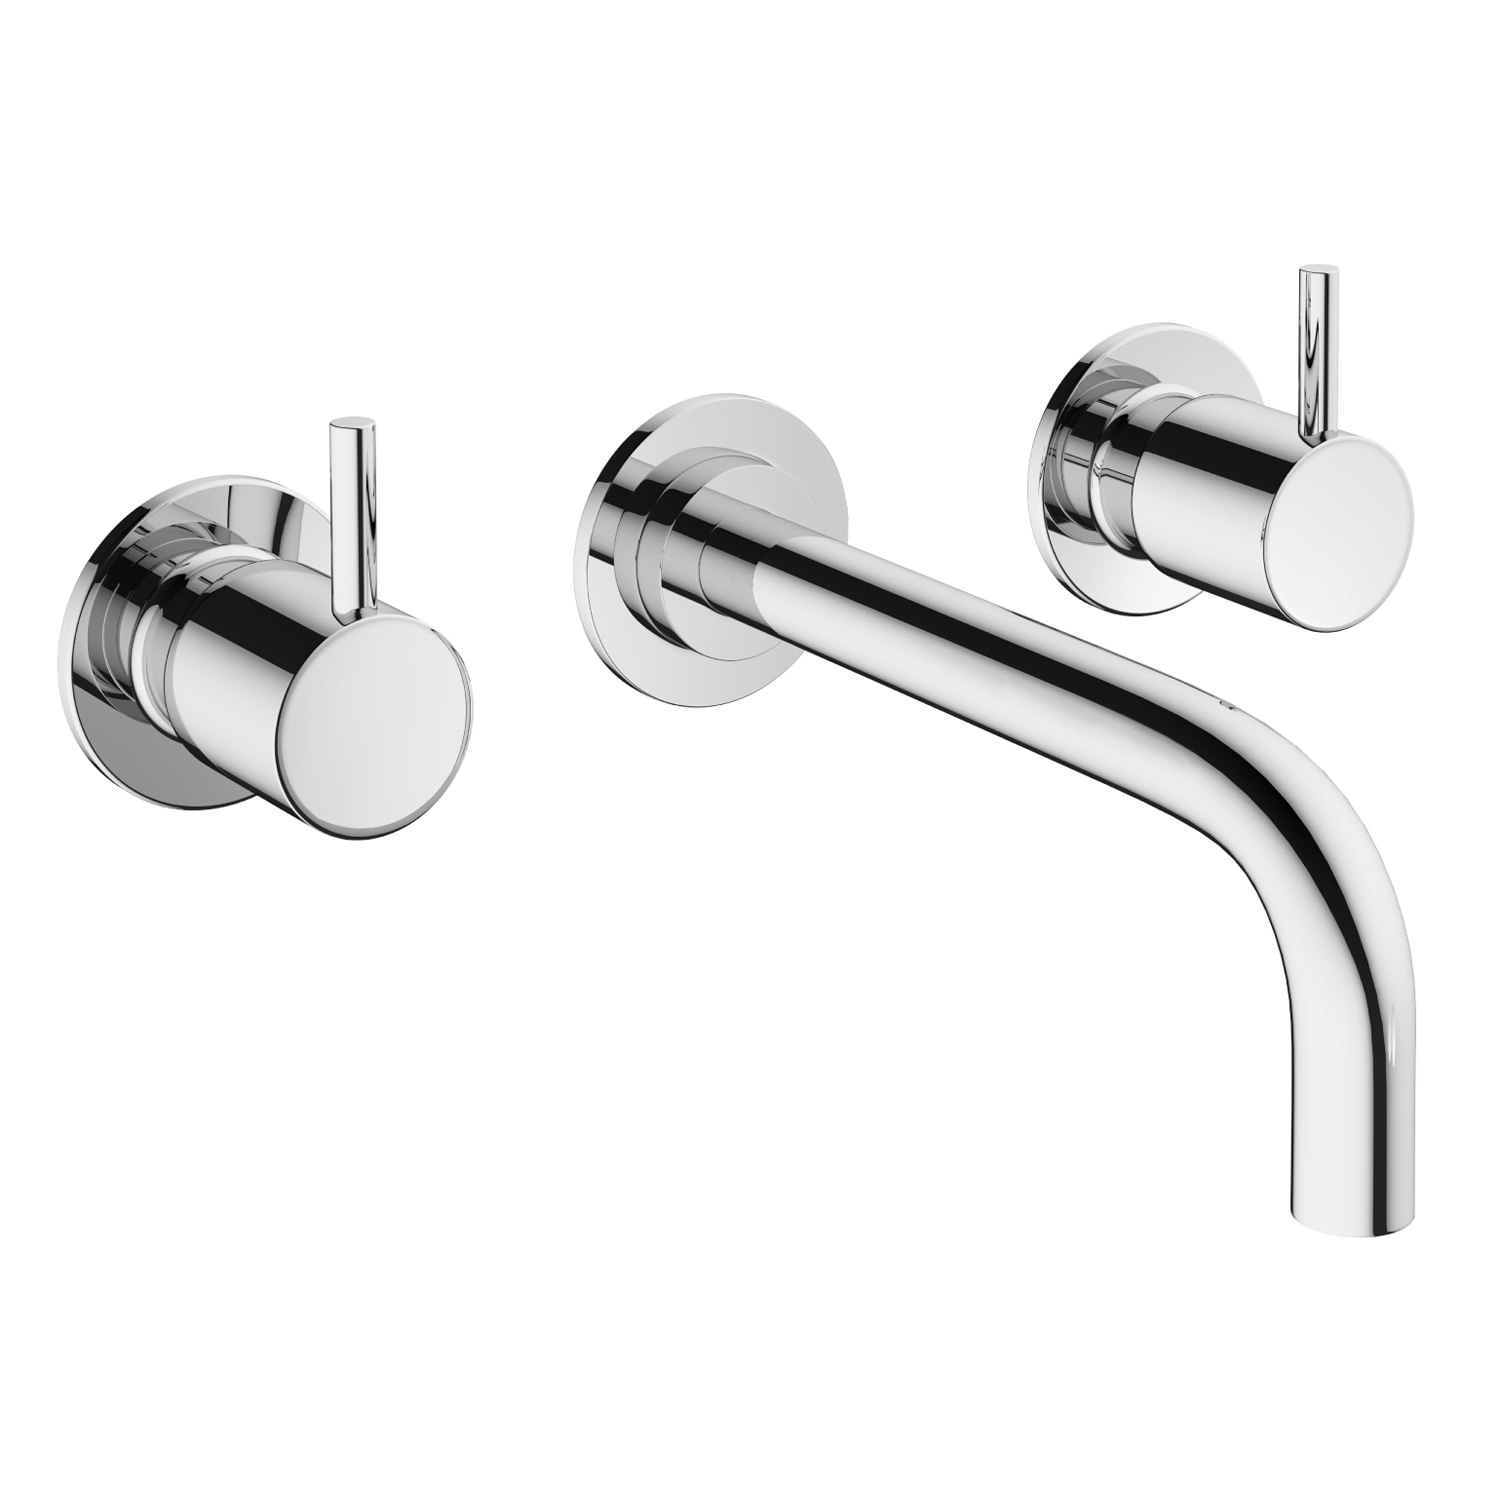 Mike Pro Wall Mounted Chrome 3 Hole Basin Mixer Tap